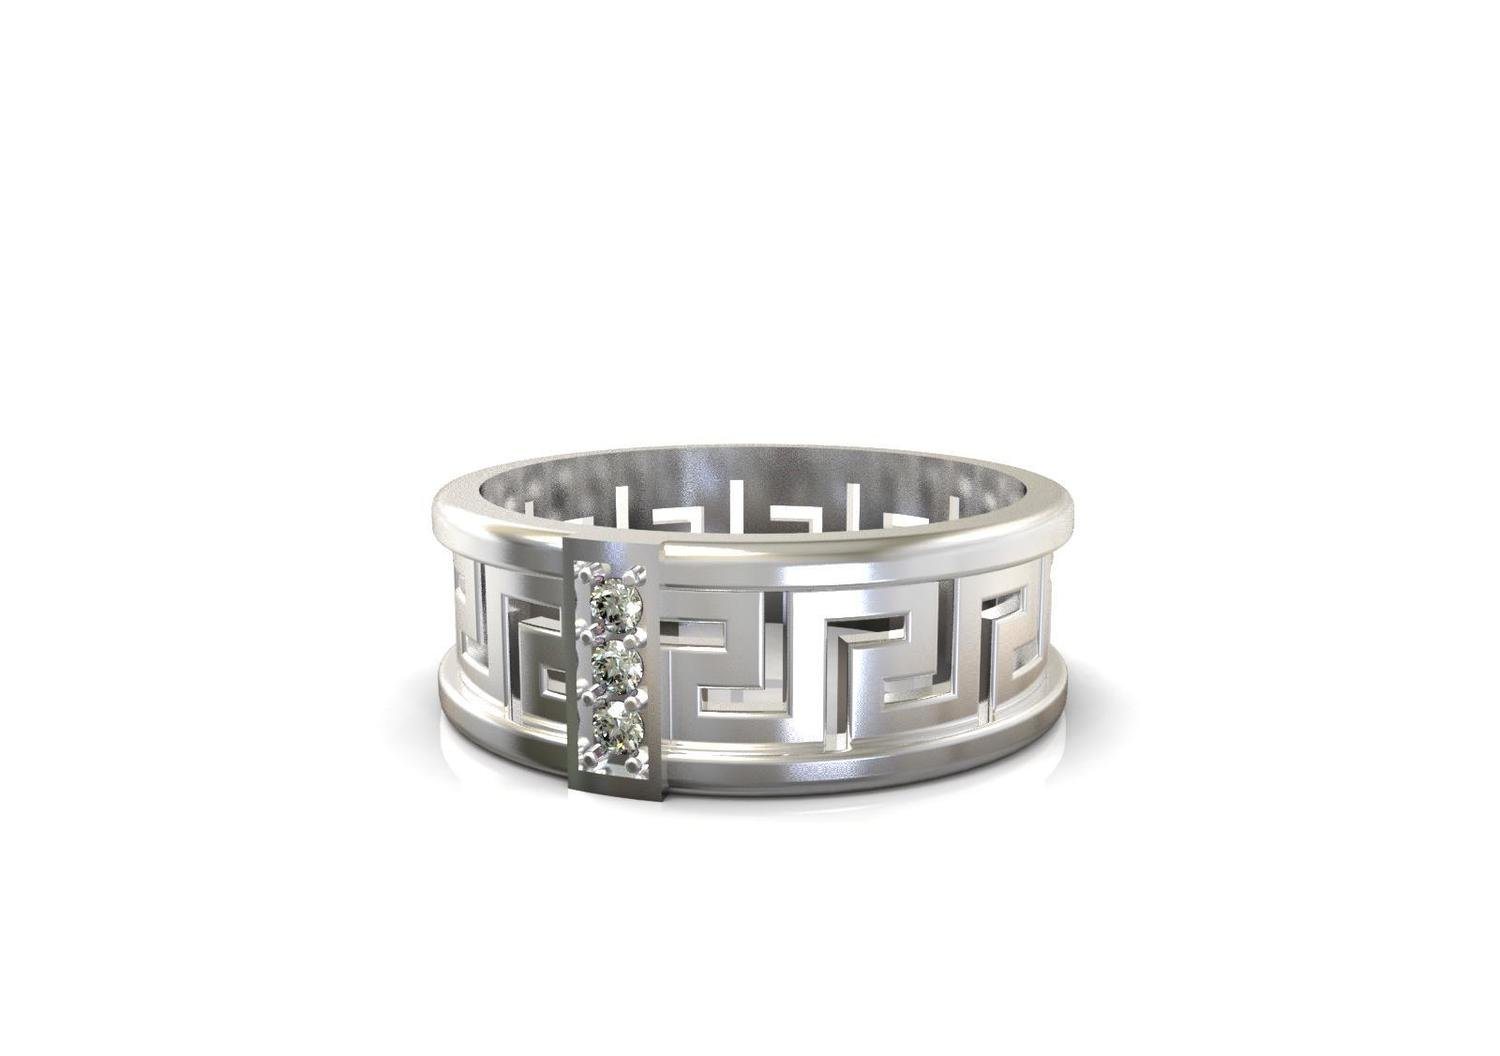 3D File of Wedding Ring with Diamonds